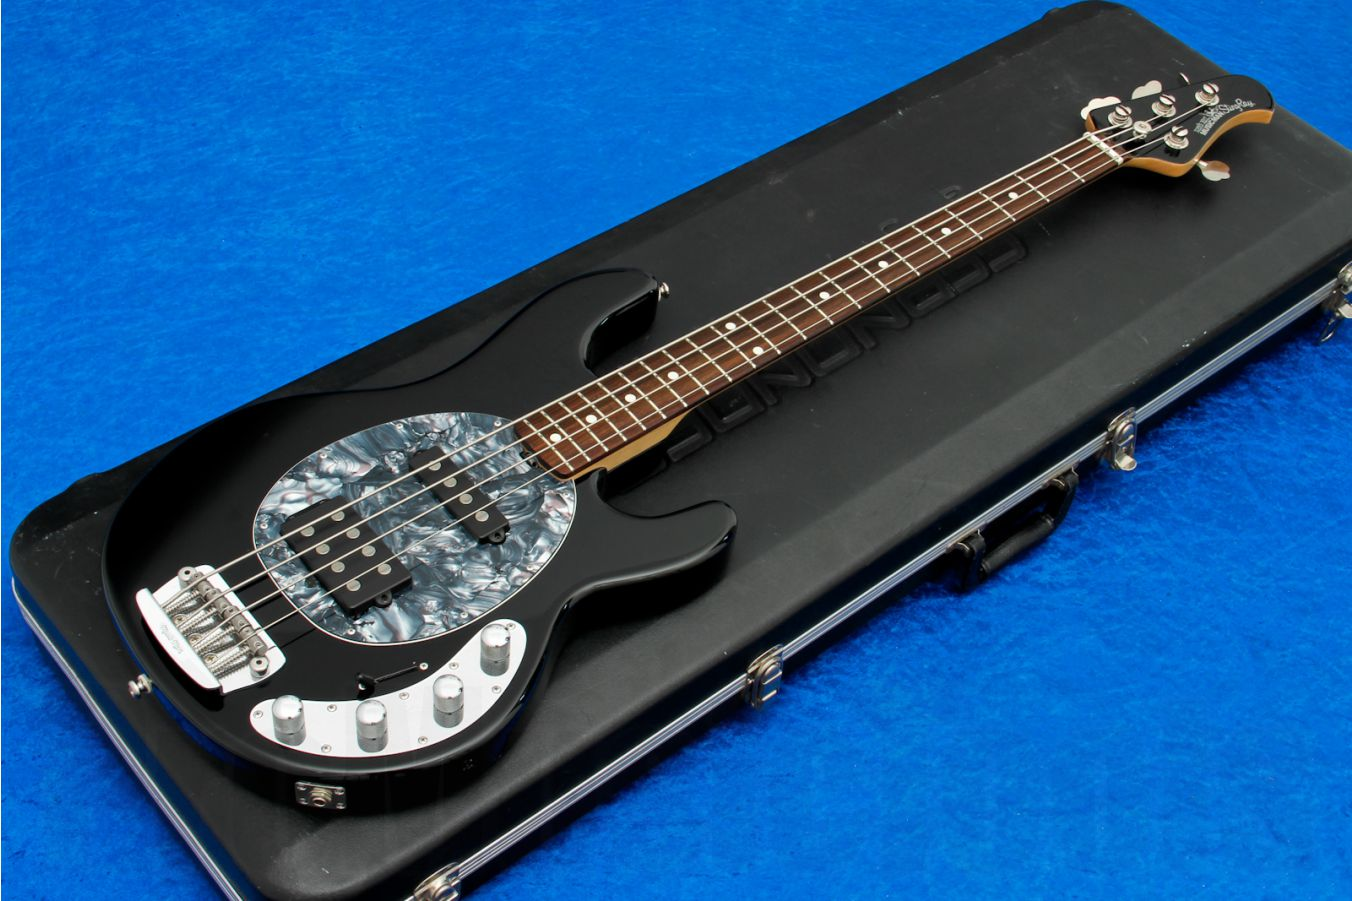 Music Man USA Stingray 4 HS BK - Black RW MH